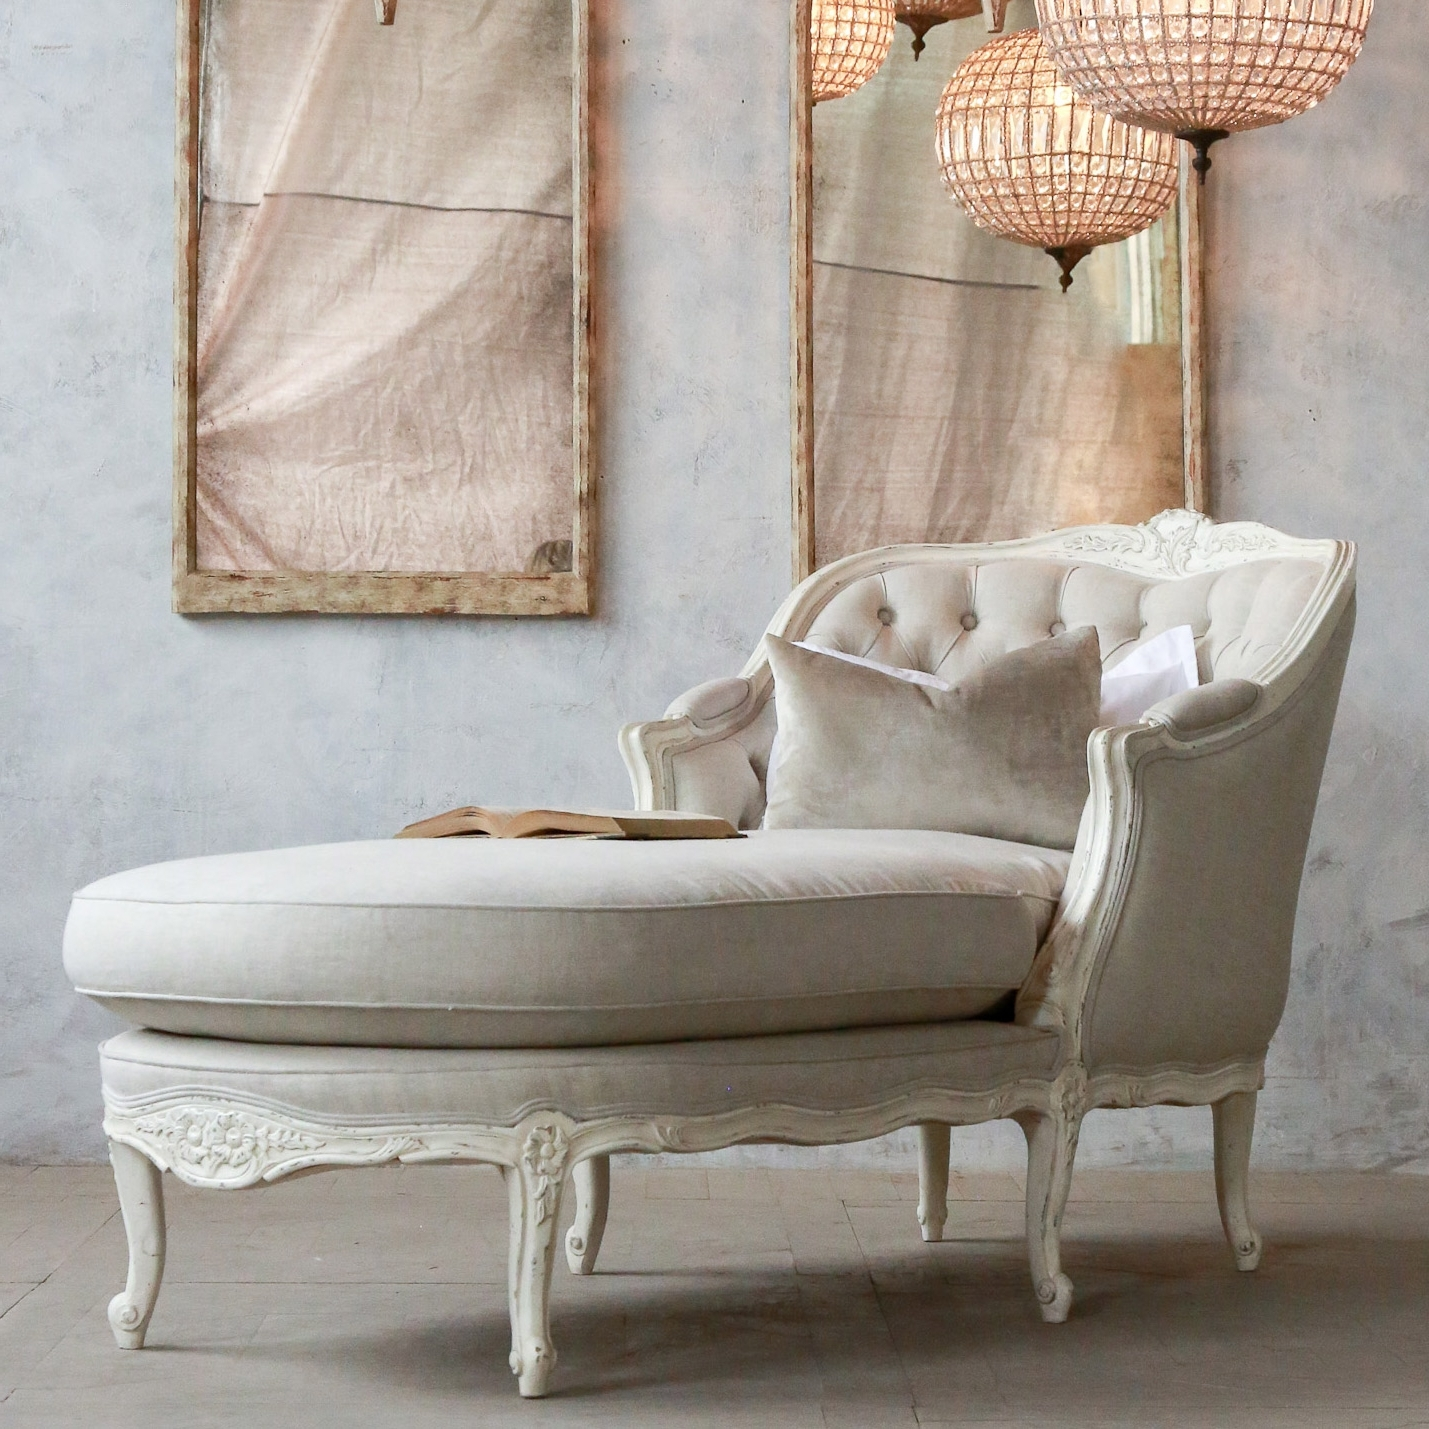 Trendy Vintage Victorian Chaise Lounge – Home Design And Decor For Vintage Chaises (View 13 of 15)